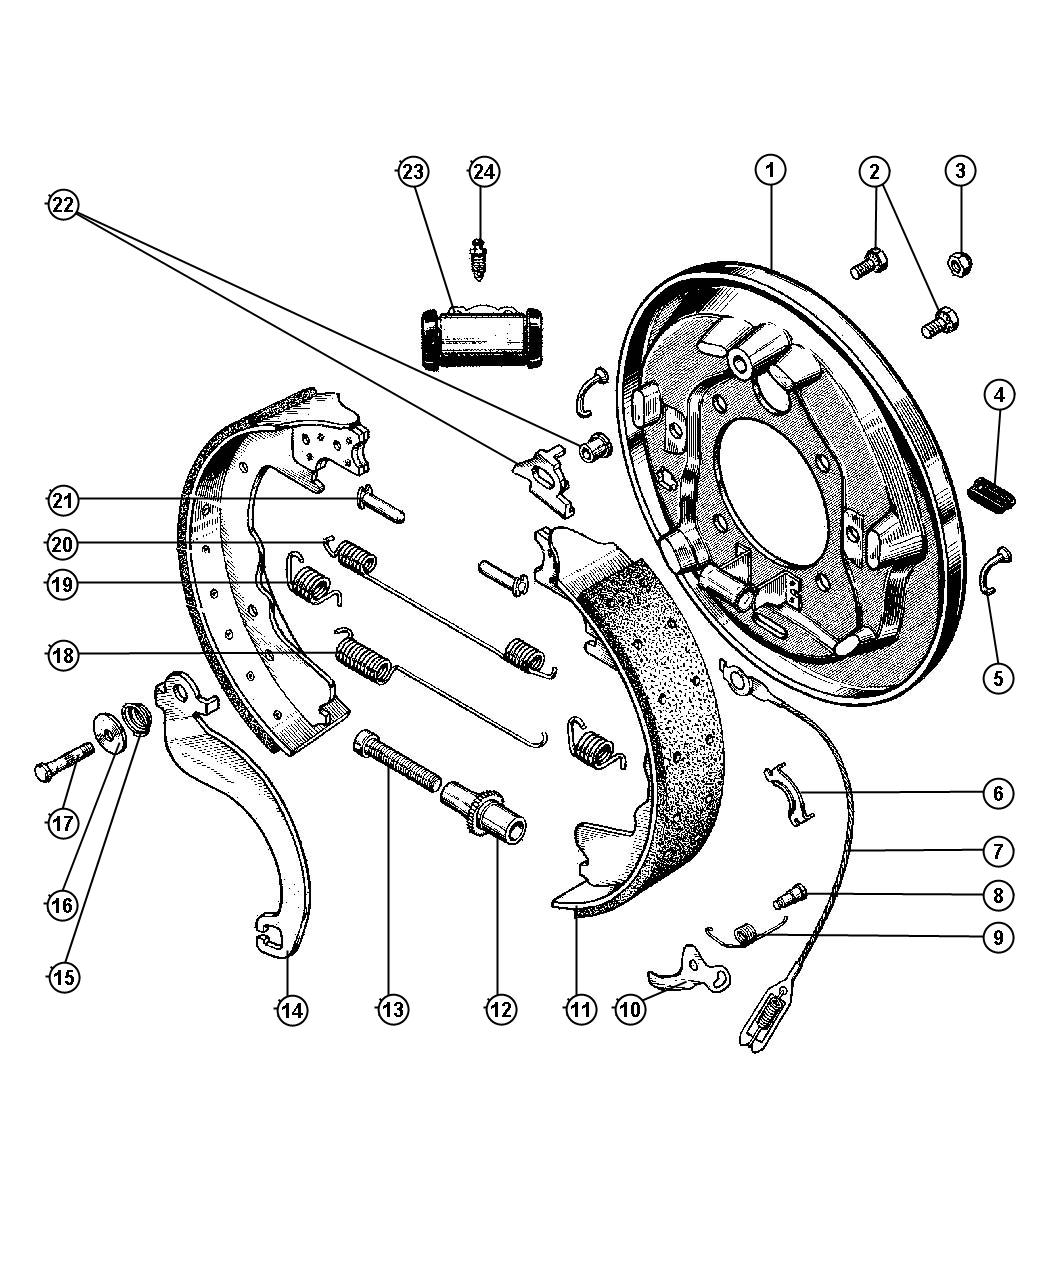 dodge truck parts diagram 24v transformer wiring rear brakes pictures to pin on